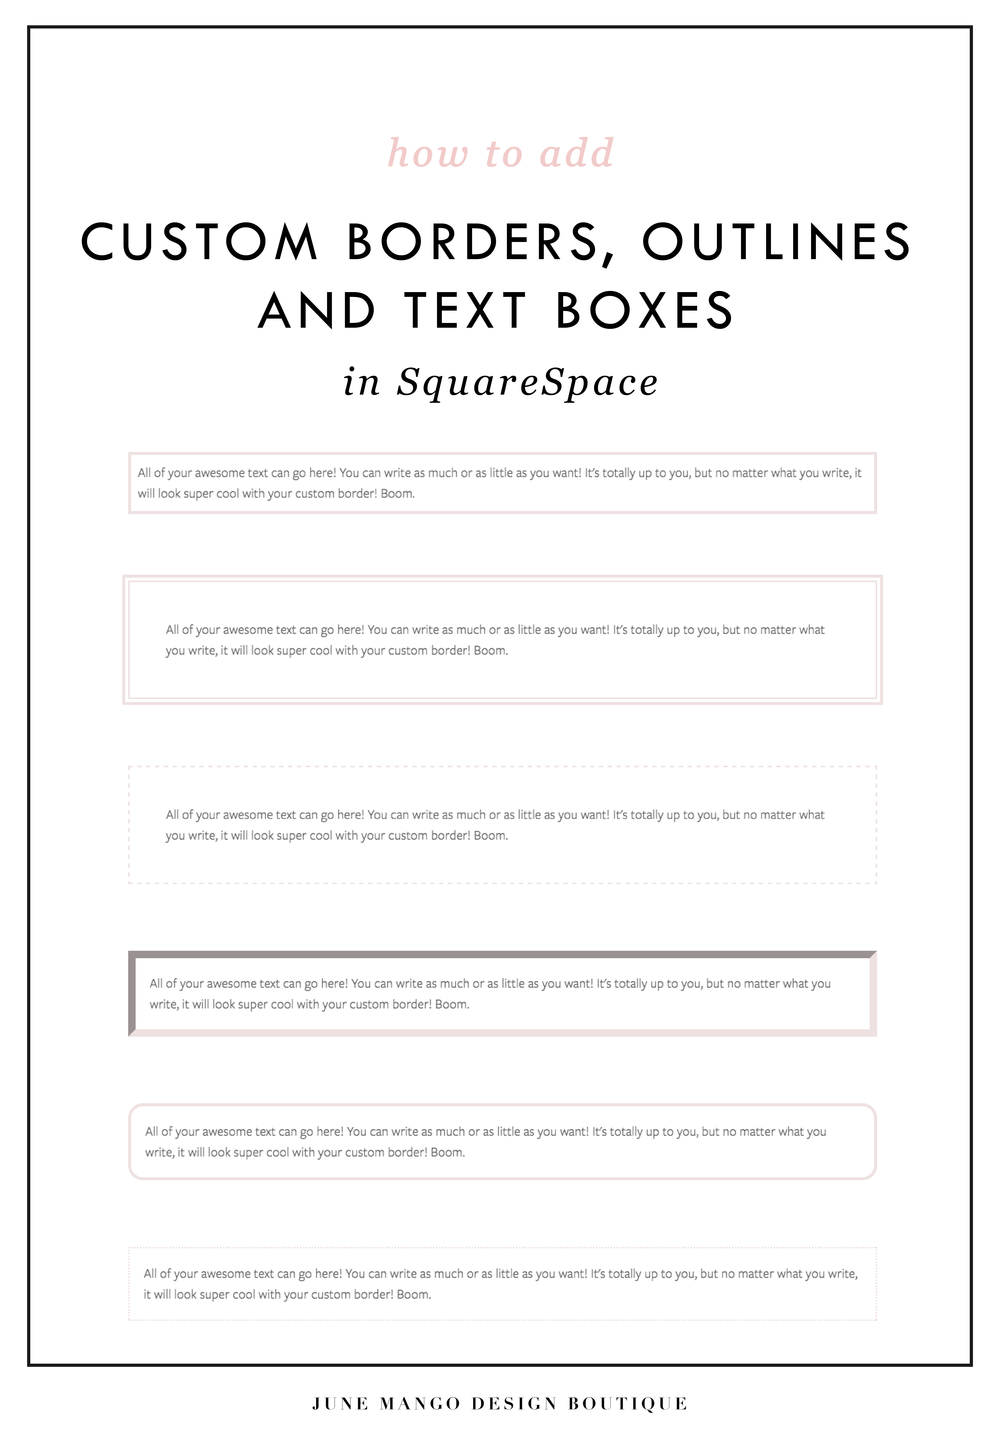 BORDERS-TEXT-BOXES-CUSTOM-OUTLINES-IN-SQUARESPACE-01-011.png